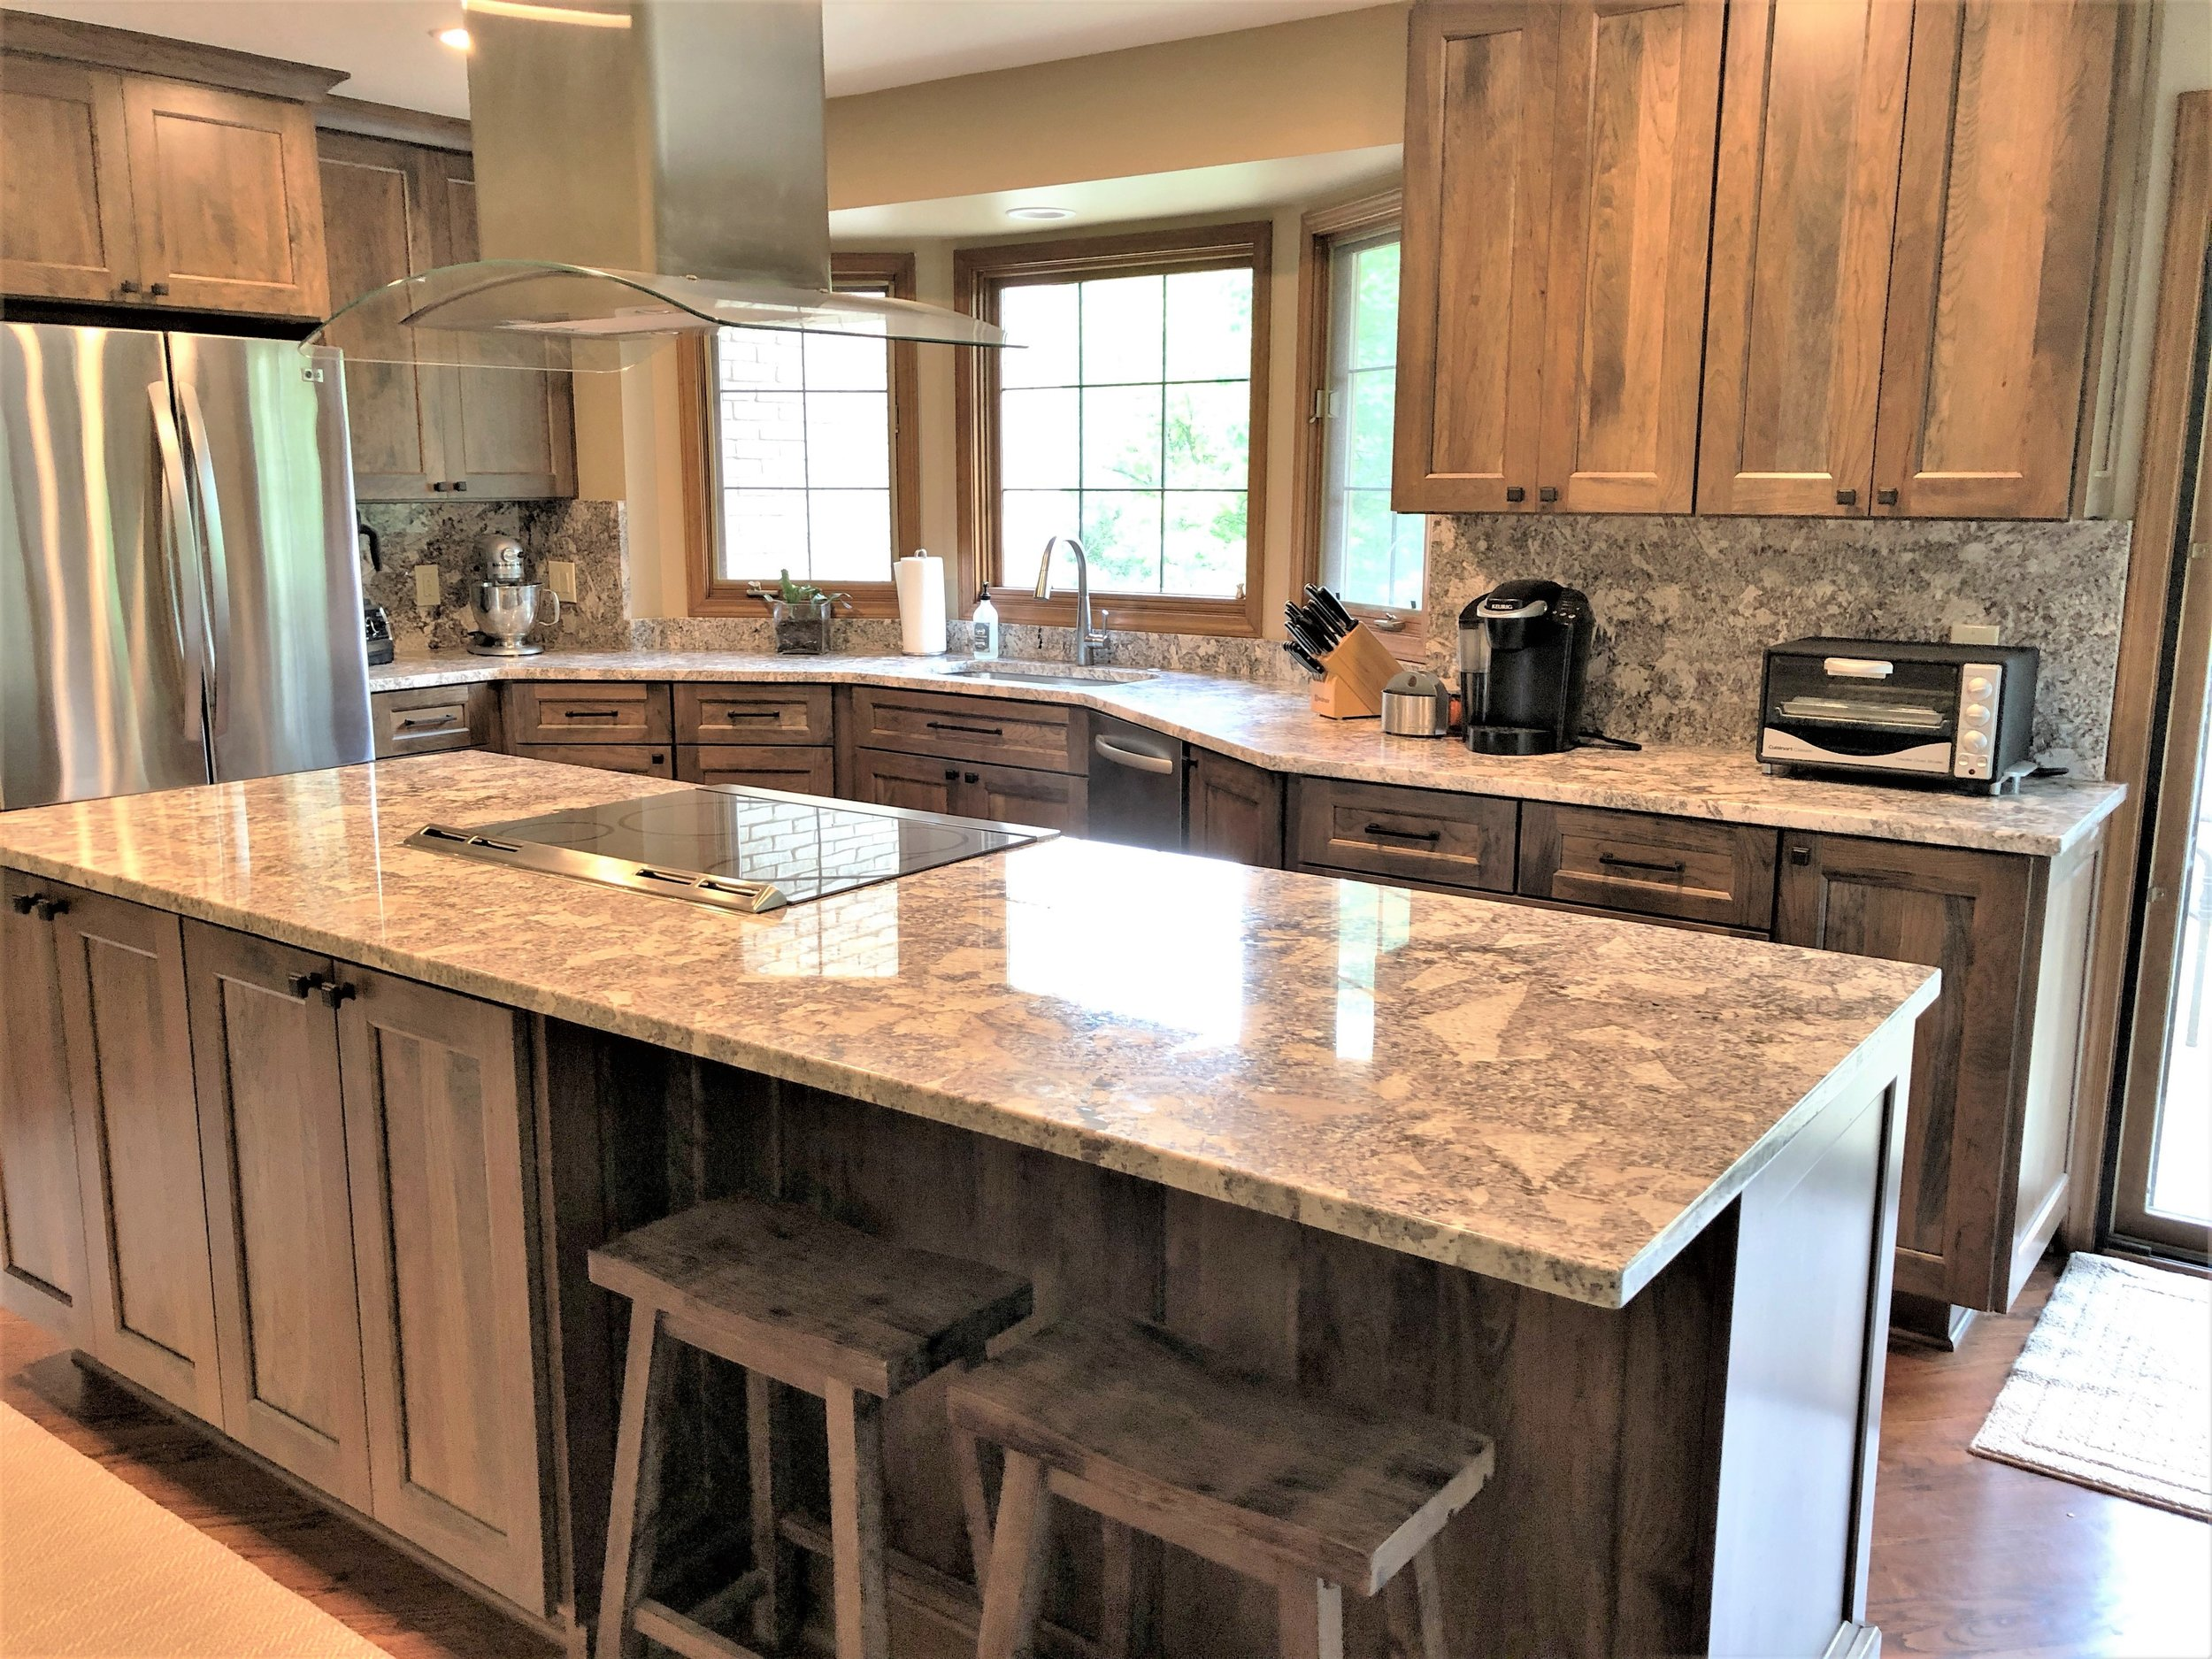 Northville Kitchen Design & Remodel